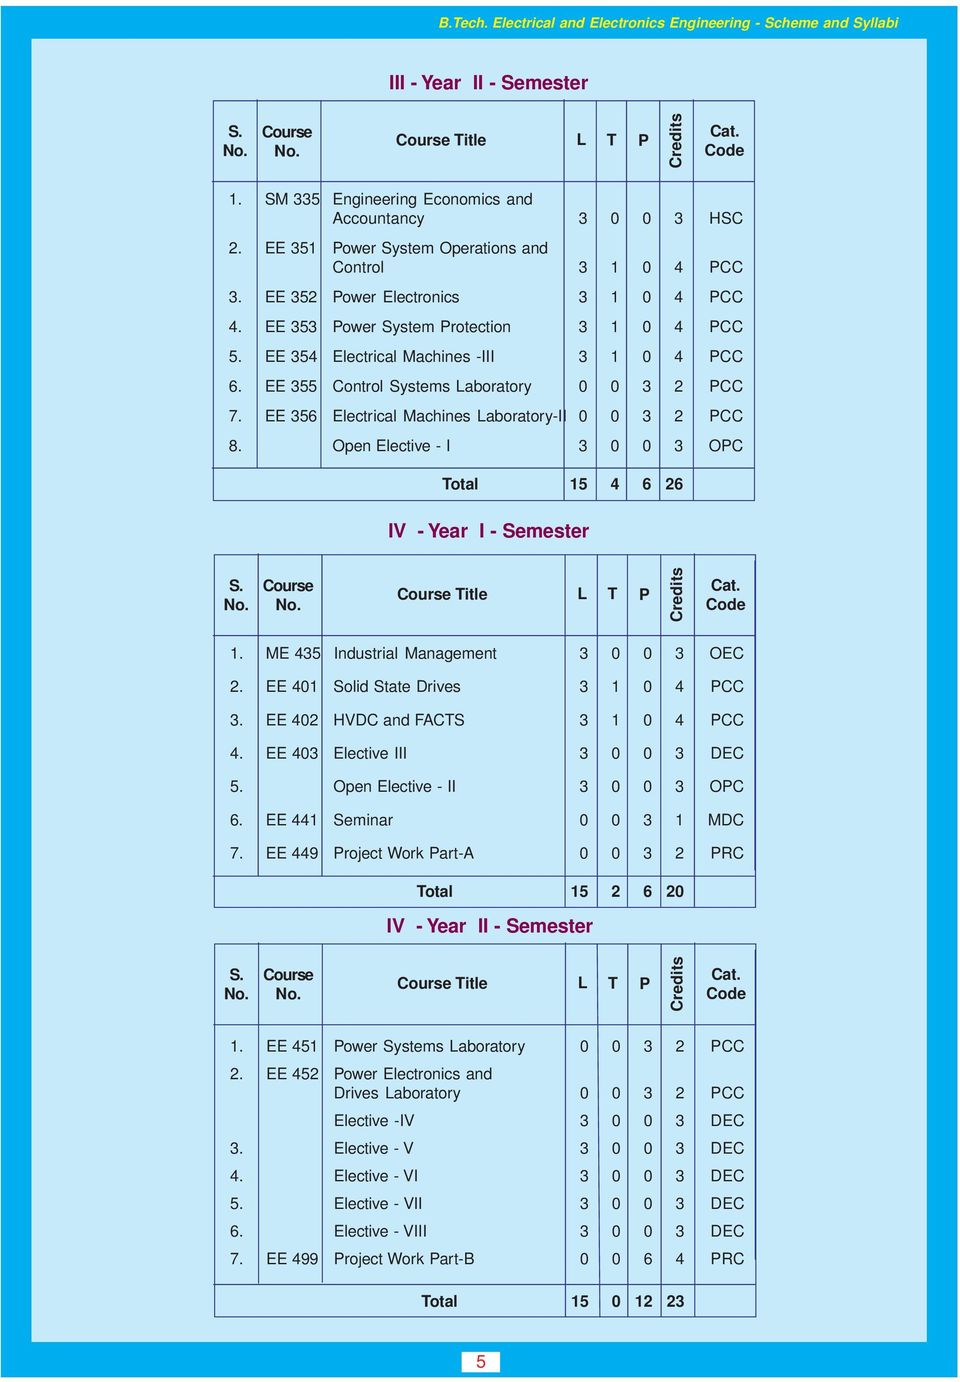 Department Of Electrical Engineering Pdf Electronic Circuit By Jb Gupta Ee 356 Machines Laboratory Ii 0 3 2 Pcc 8 Open Elective